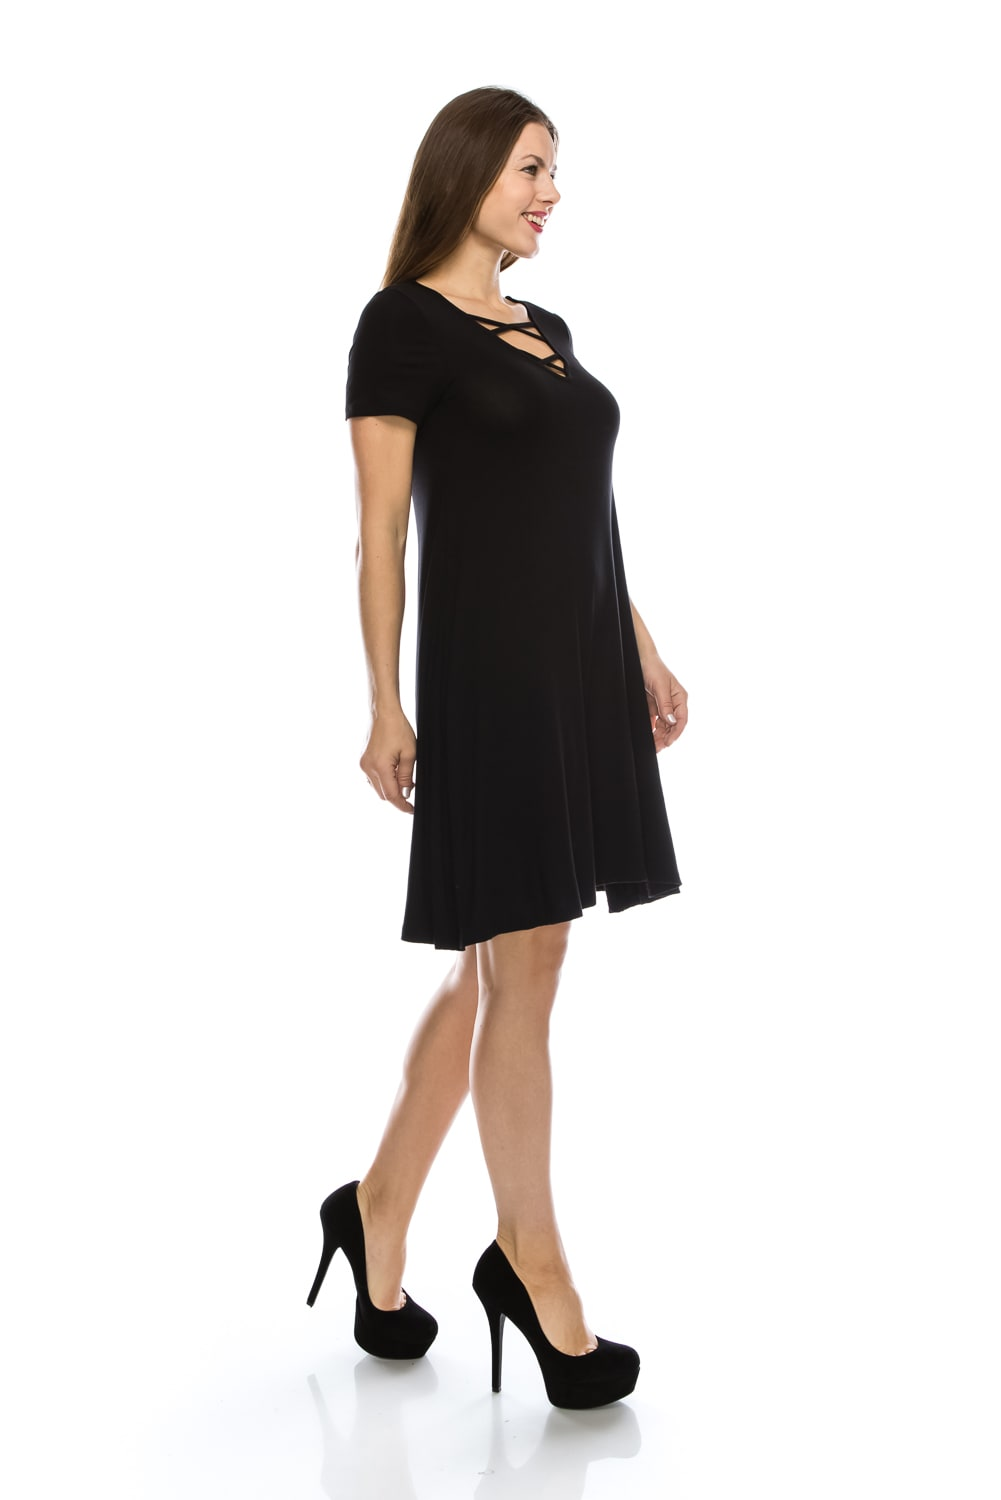 Exciting Tunic Shift Dress w/ V-Neck Short Sleeve with CrissCross Fashion Strap